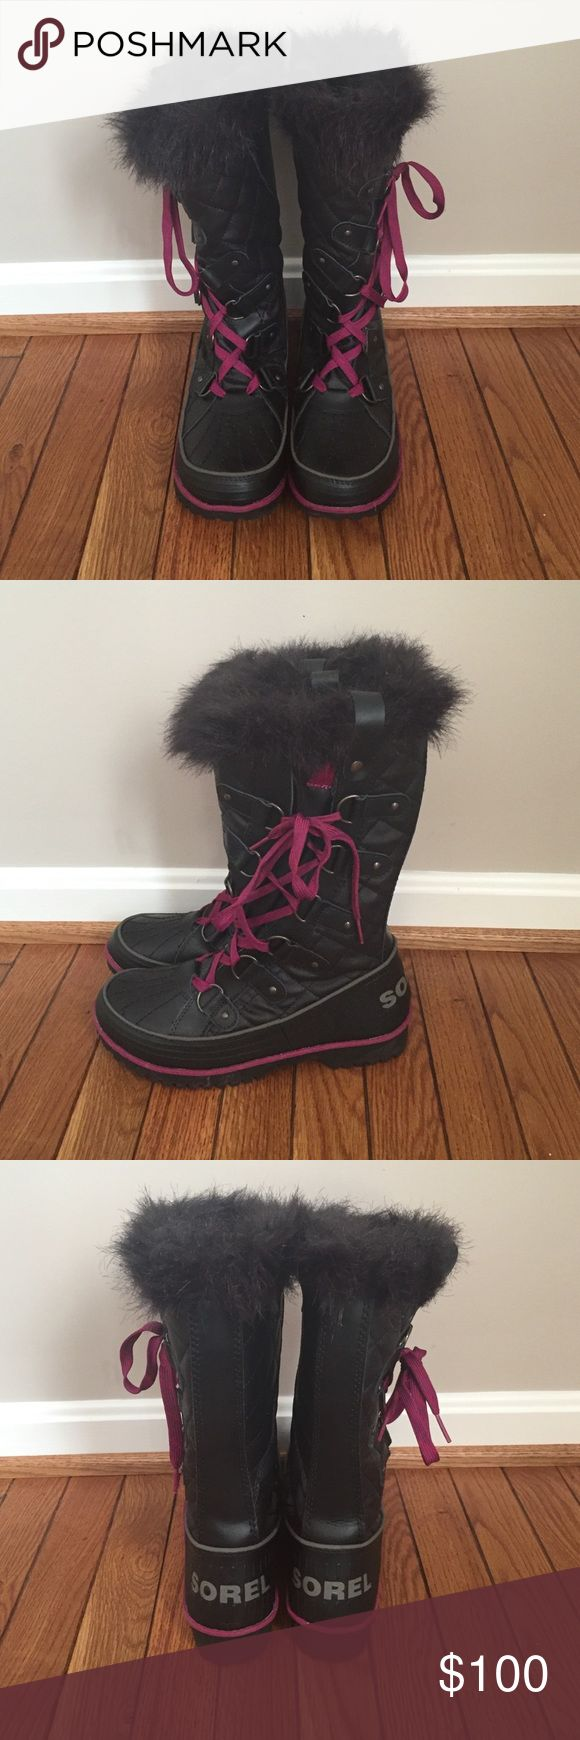 Women's Tall Sorel Snow Boots Worn once!!! Rubber bottom snow boots with warm thermal insulation and a faux fur decorative design around the calf. Stylish and unique lace up design SOREL Shoes Winter & Rain Boots